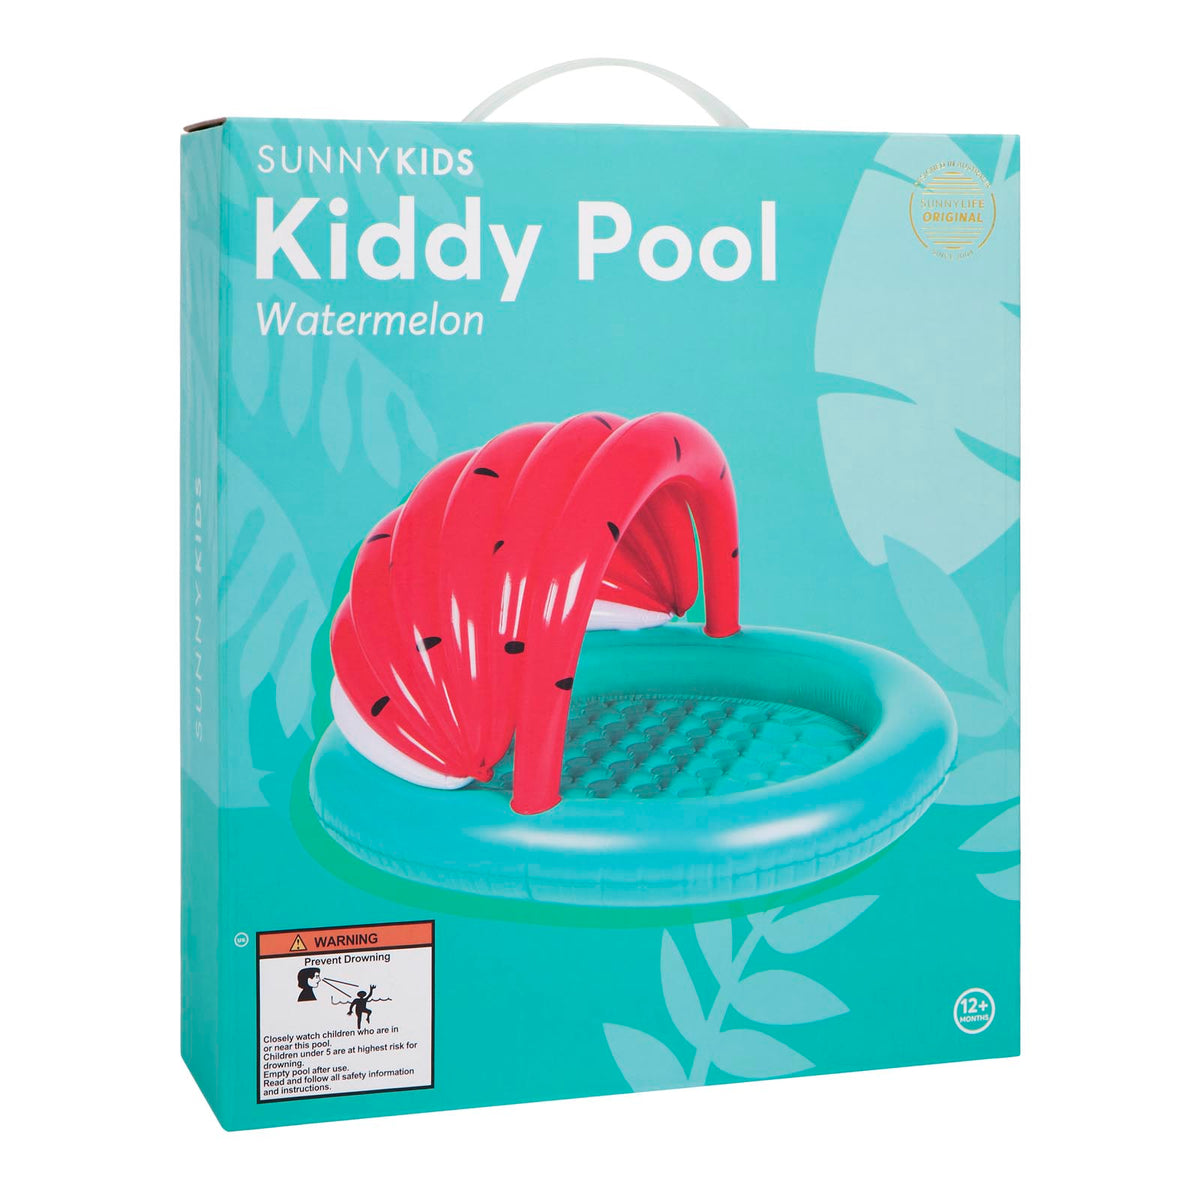 Kiddy Pool | Watermelon